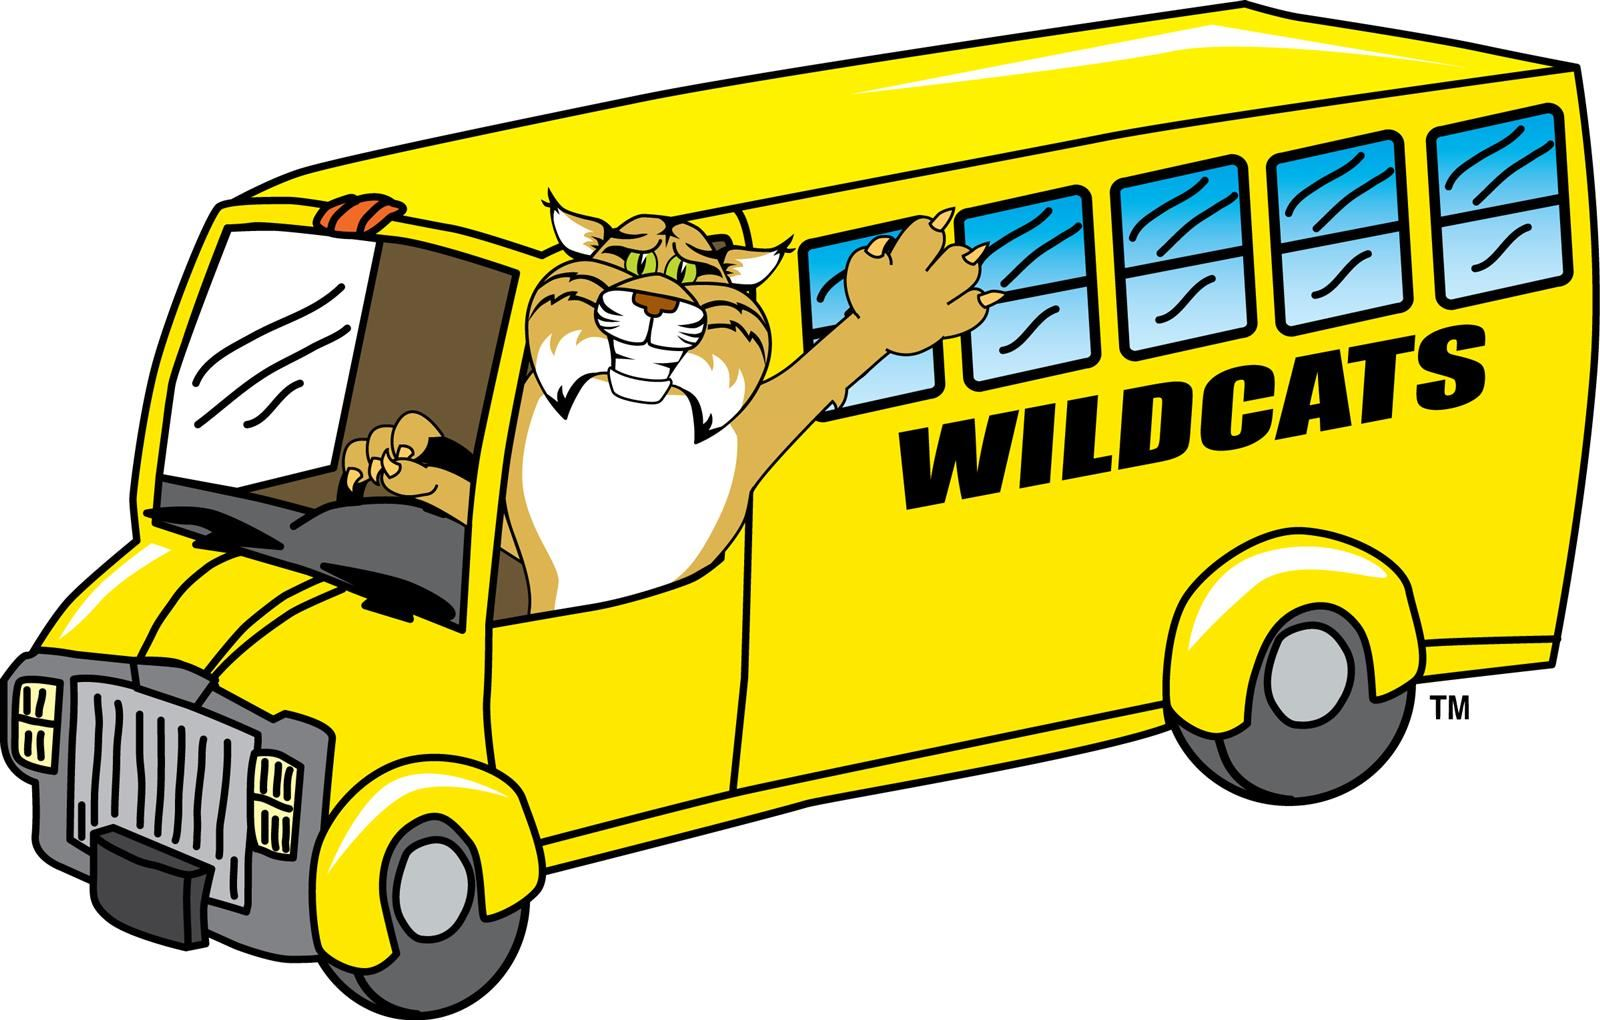 wildcat in a bus